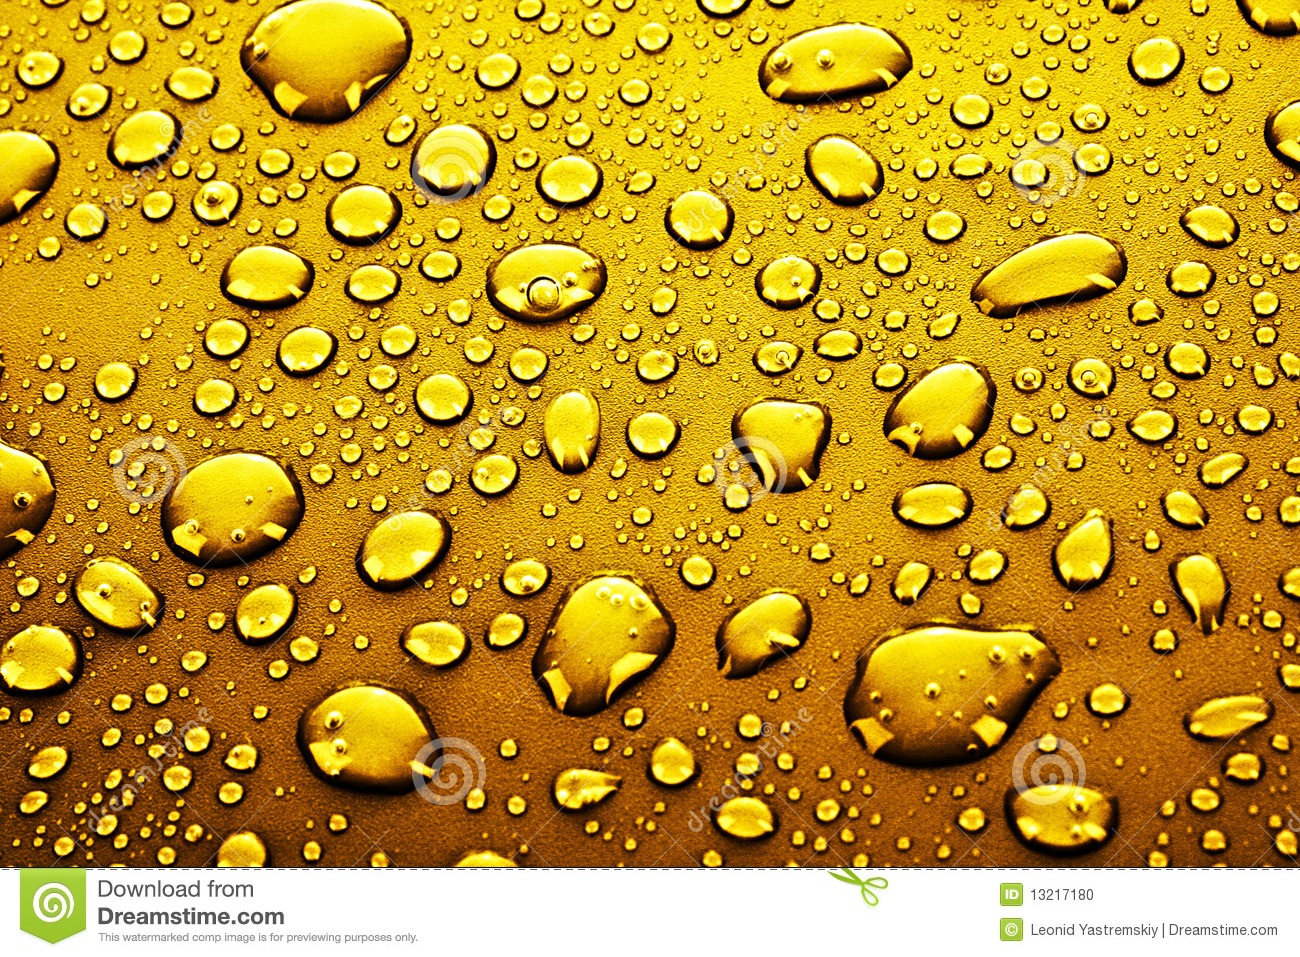 Gold Water Drops Stock Photo - Image: 13217180